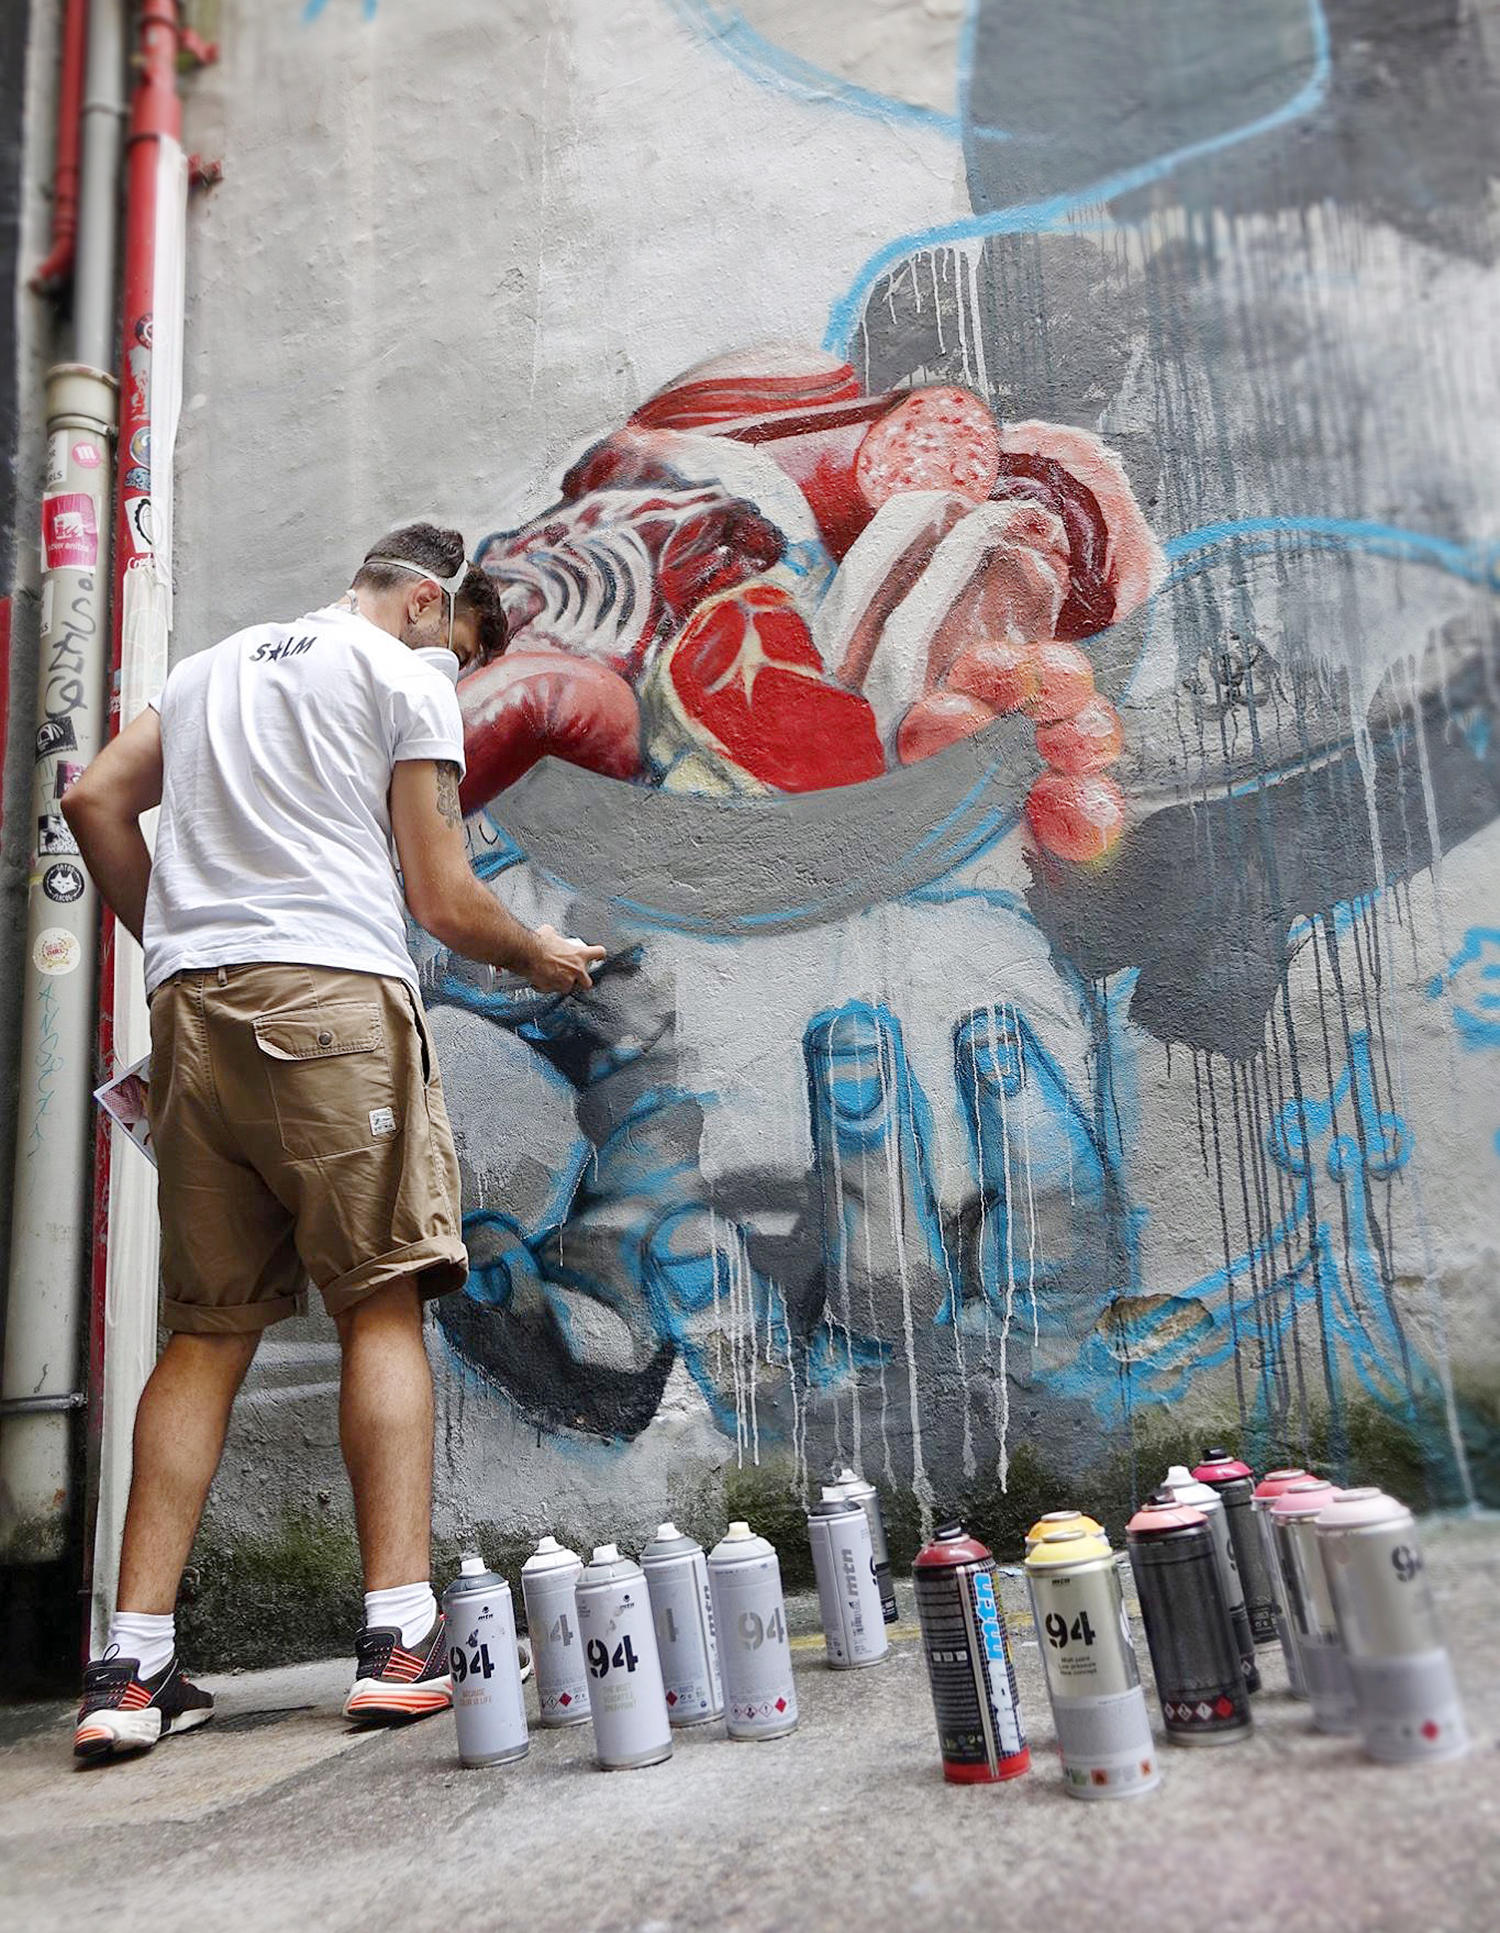 the artist spray painting, dan ferrer